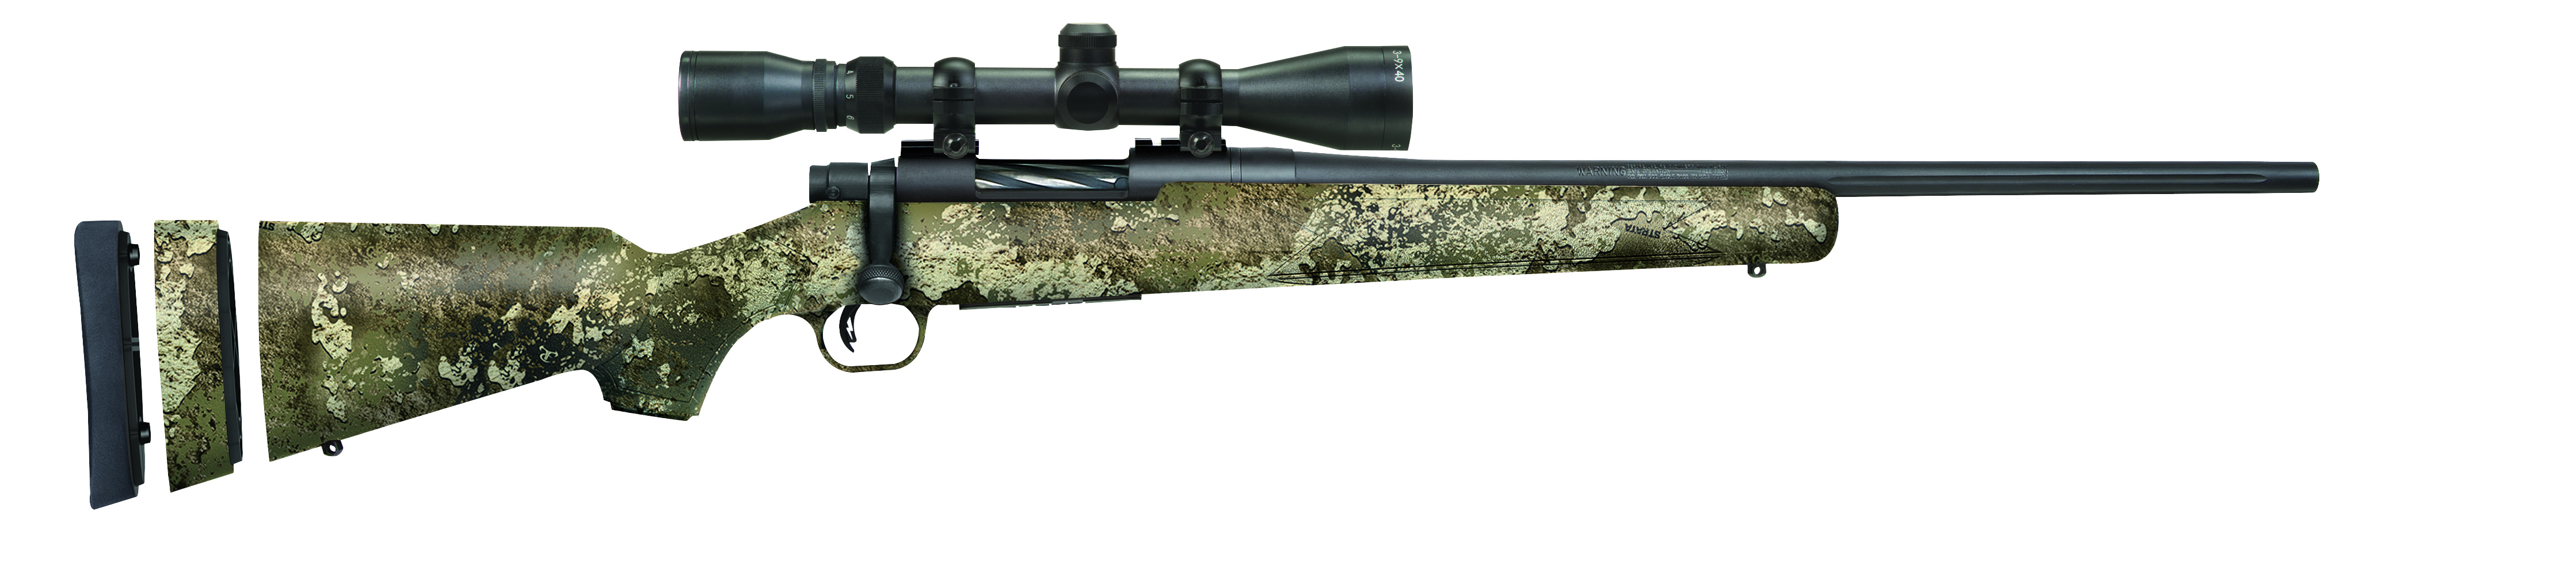 Mossberg Patriot Super Bantam Rifle 6.5 Creedmoor